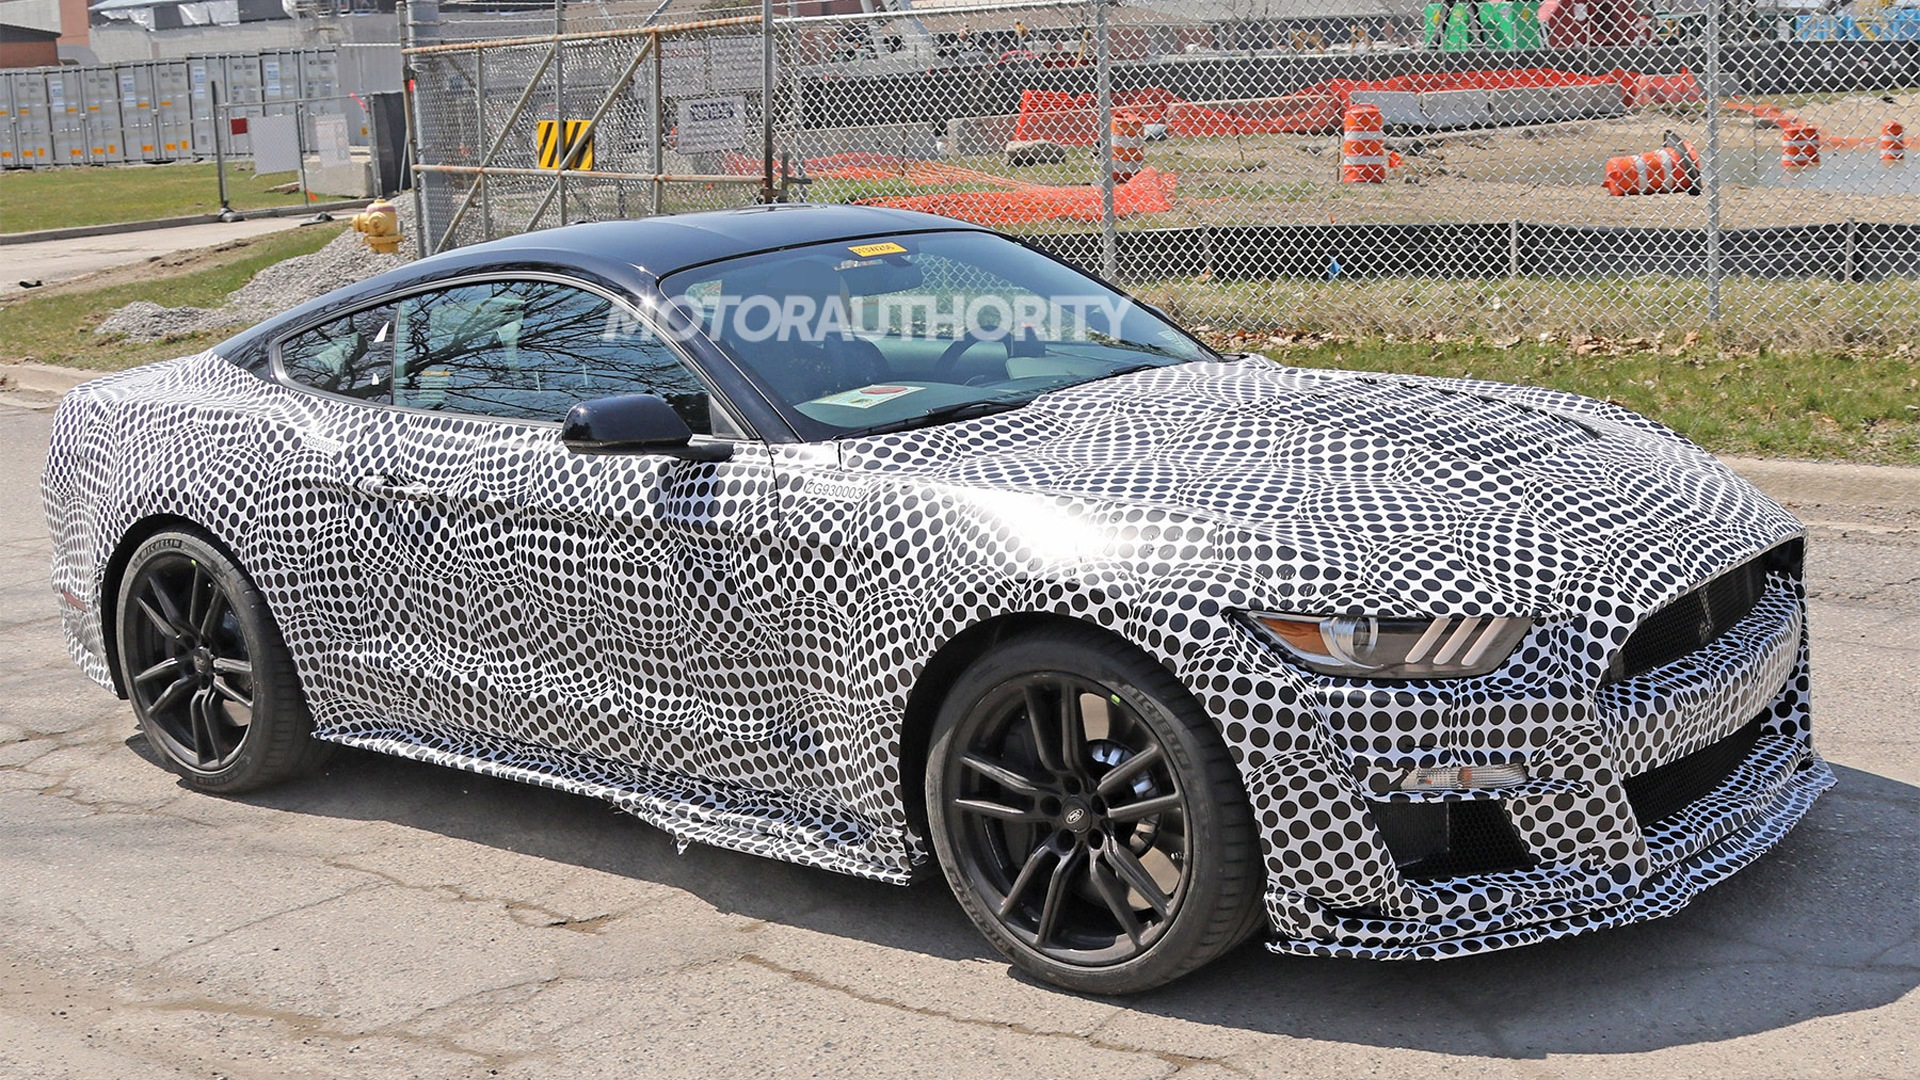 51 All New Spy Shots Ford Mustang Svt Gt 500 Review